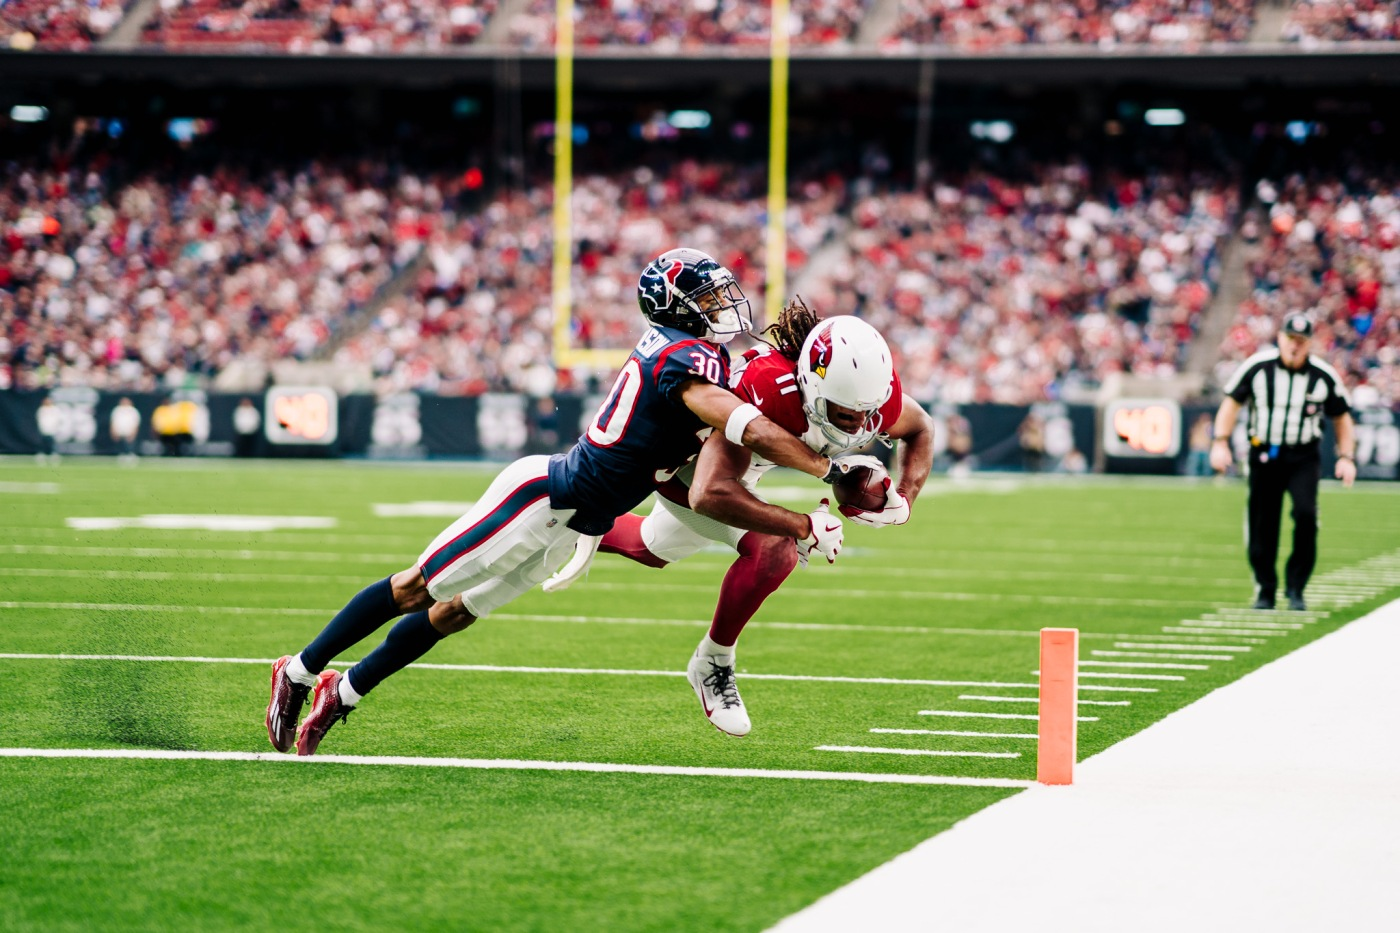 NFL with the Sony a7RIII and a9 – Chad Wadsworth | Photographer